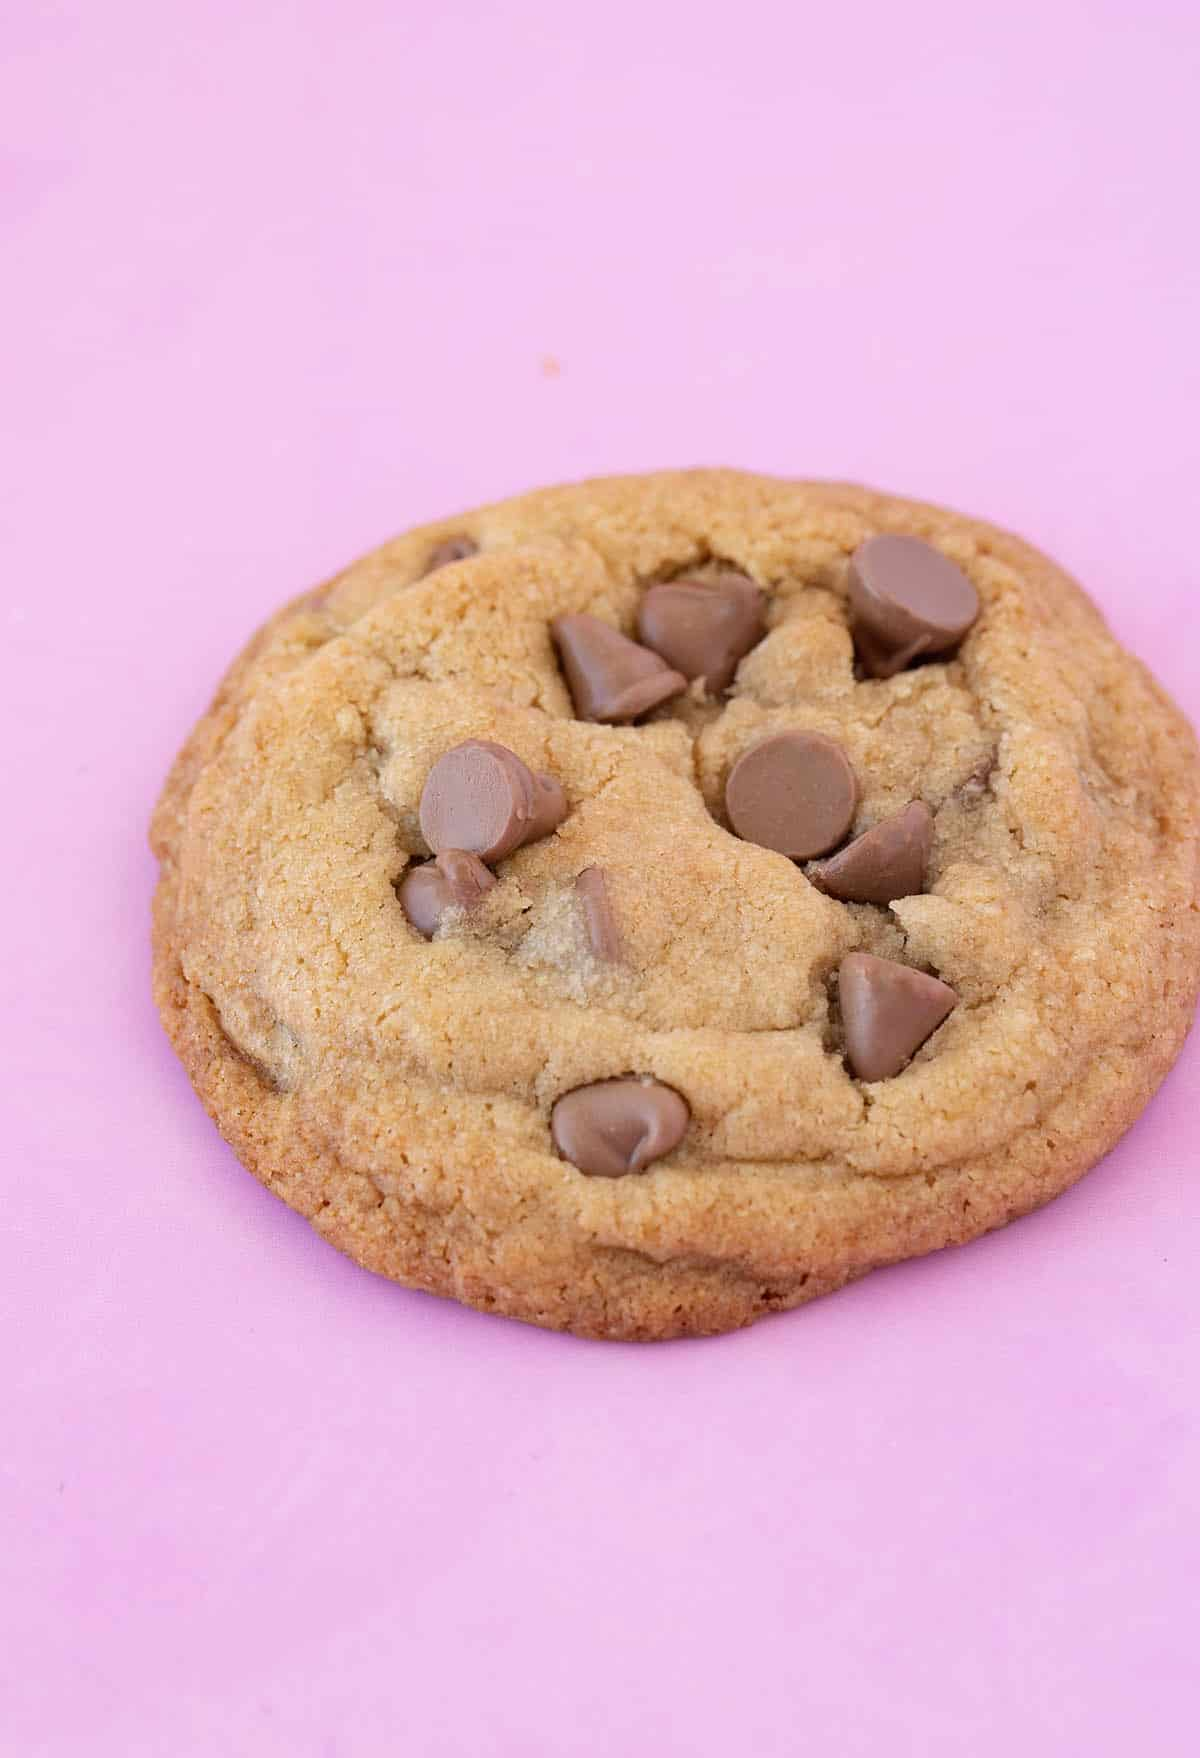 Perfect chocolate chip cookie on a pink background with a bite taken out of it